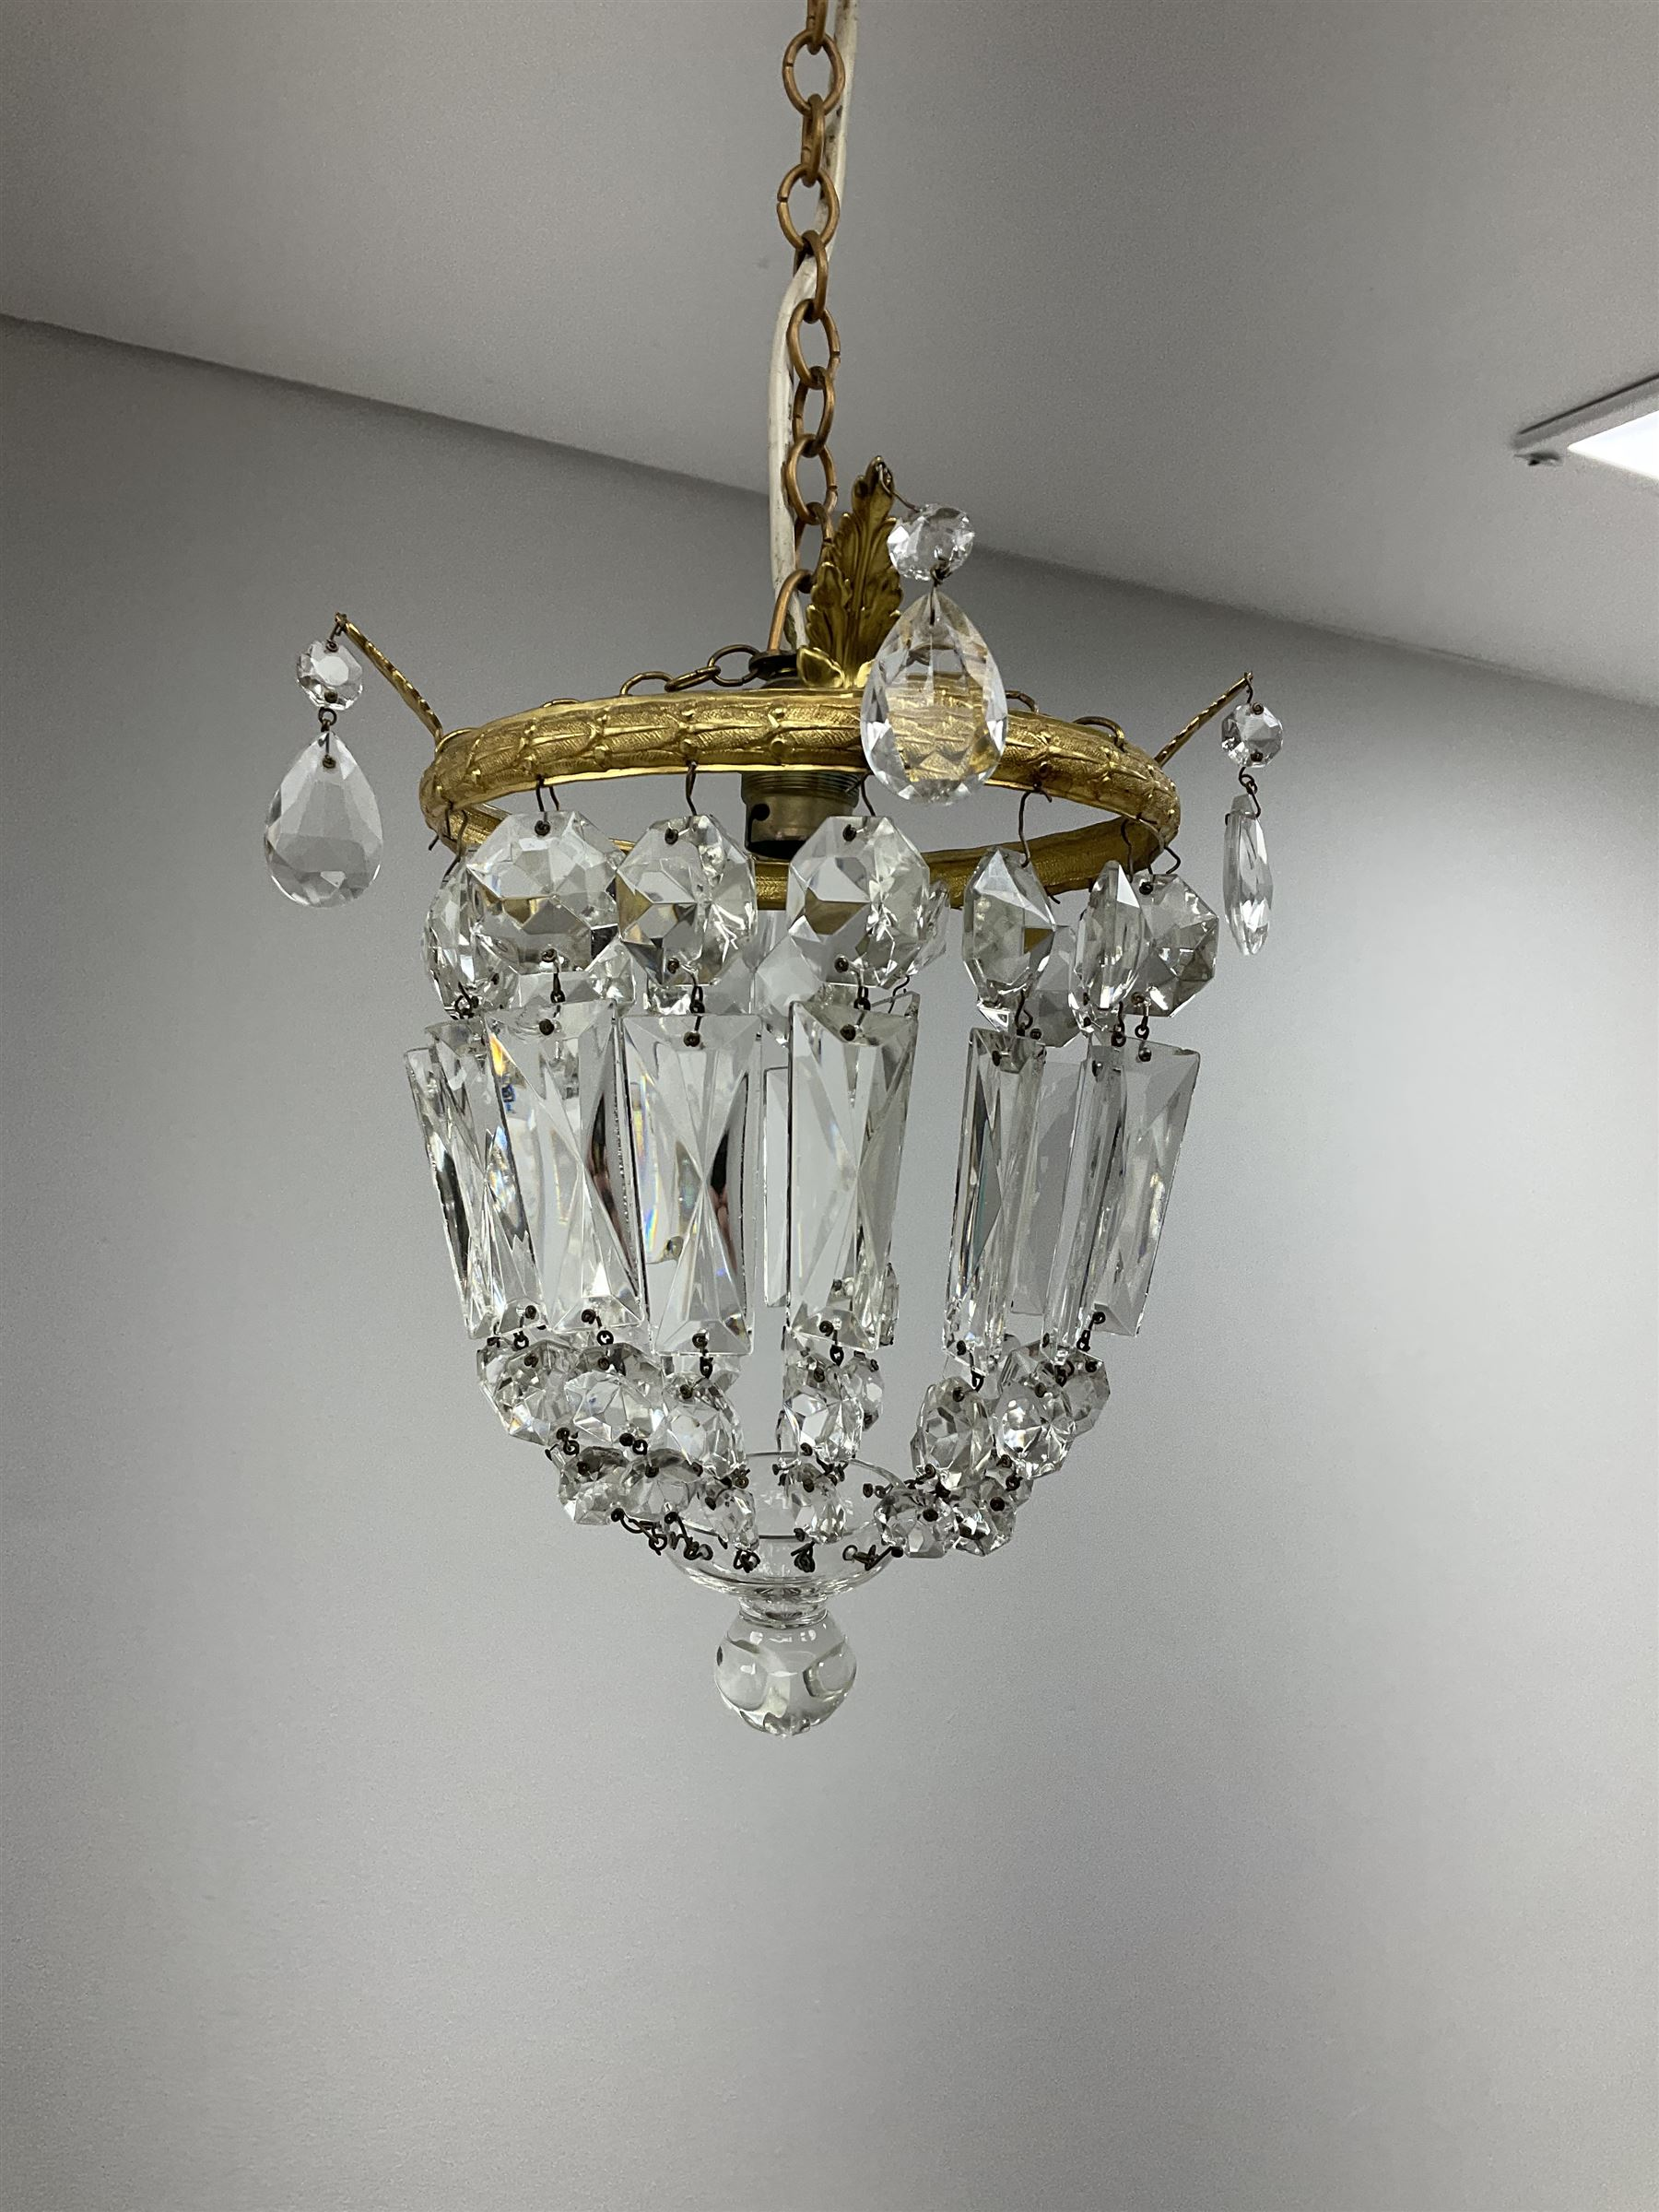 A pair of cut glass bag chandeliers with gilt metal mounts of clear glass drops - Image 3 of 3